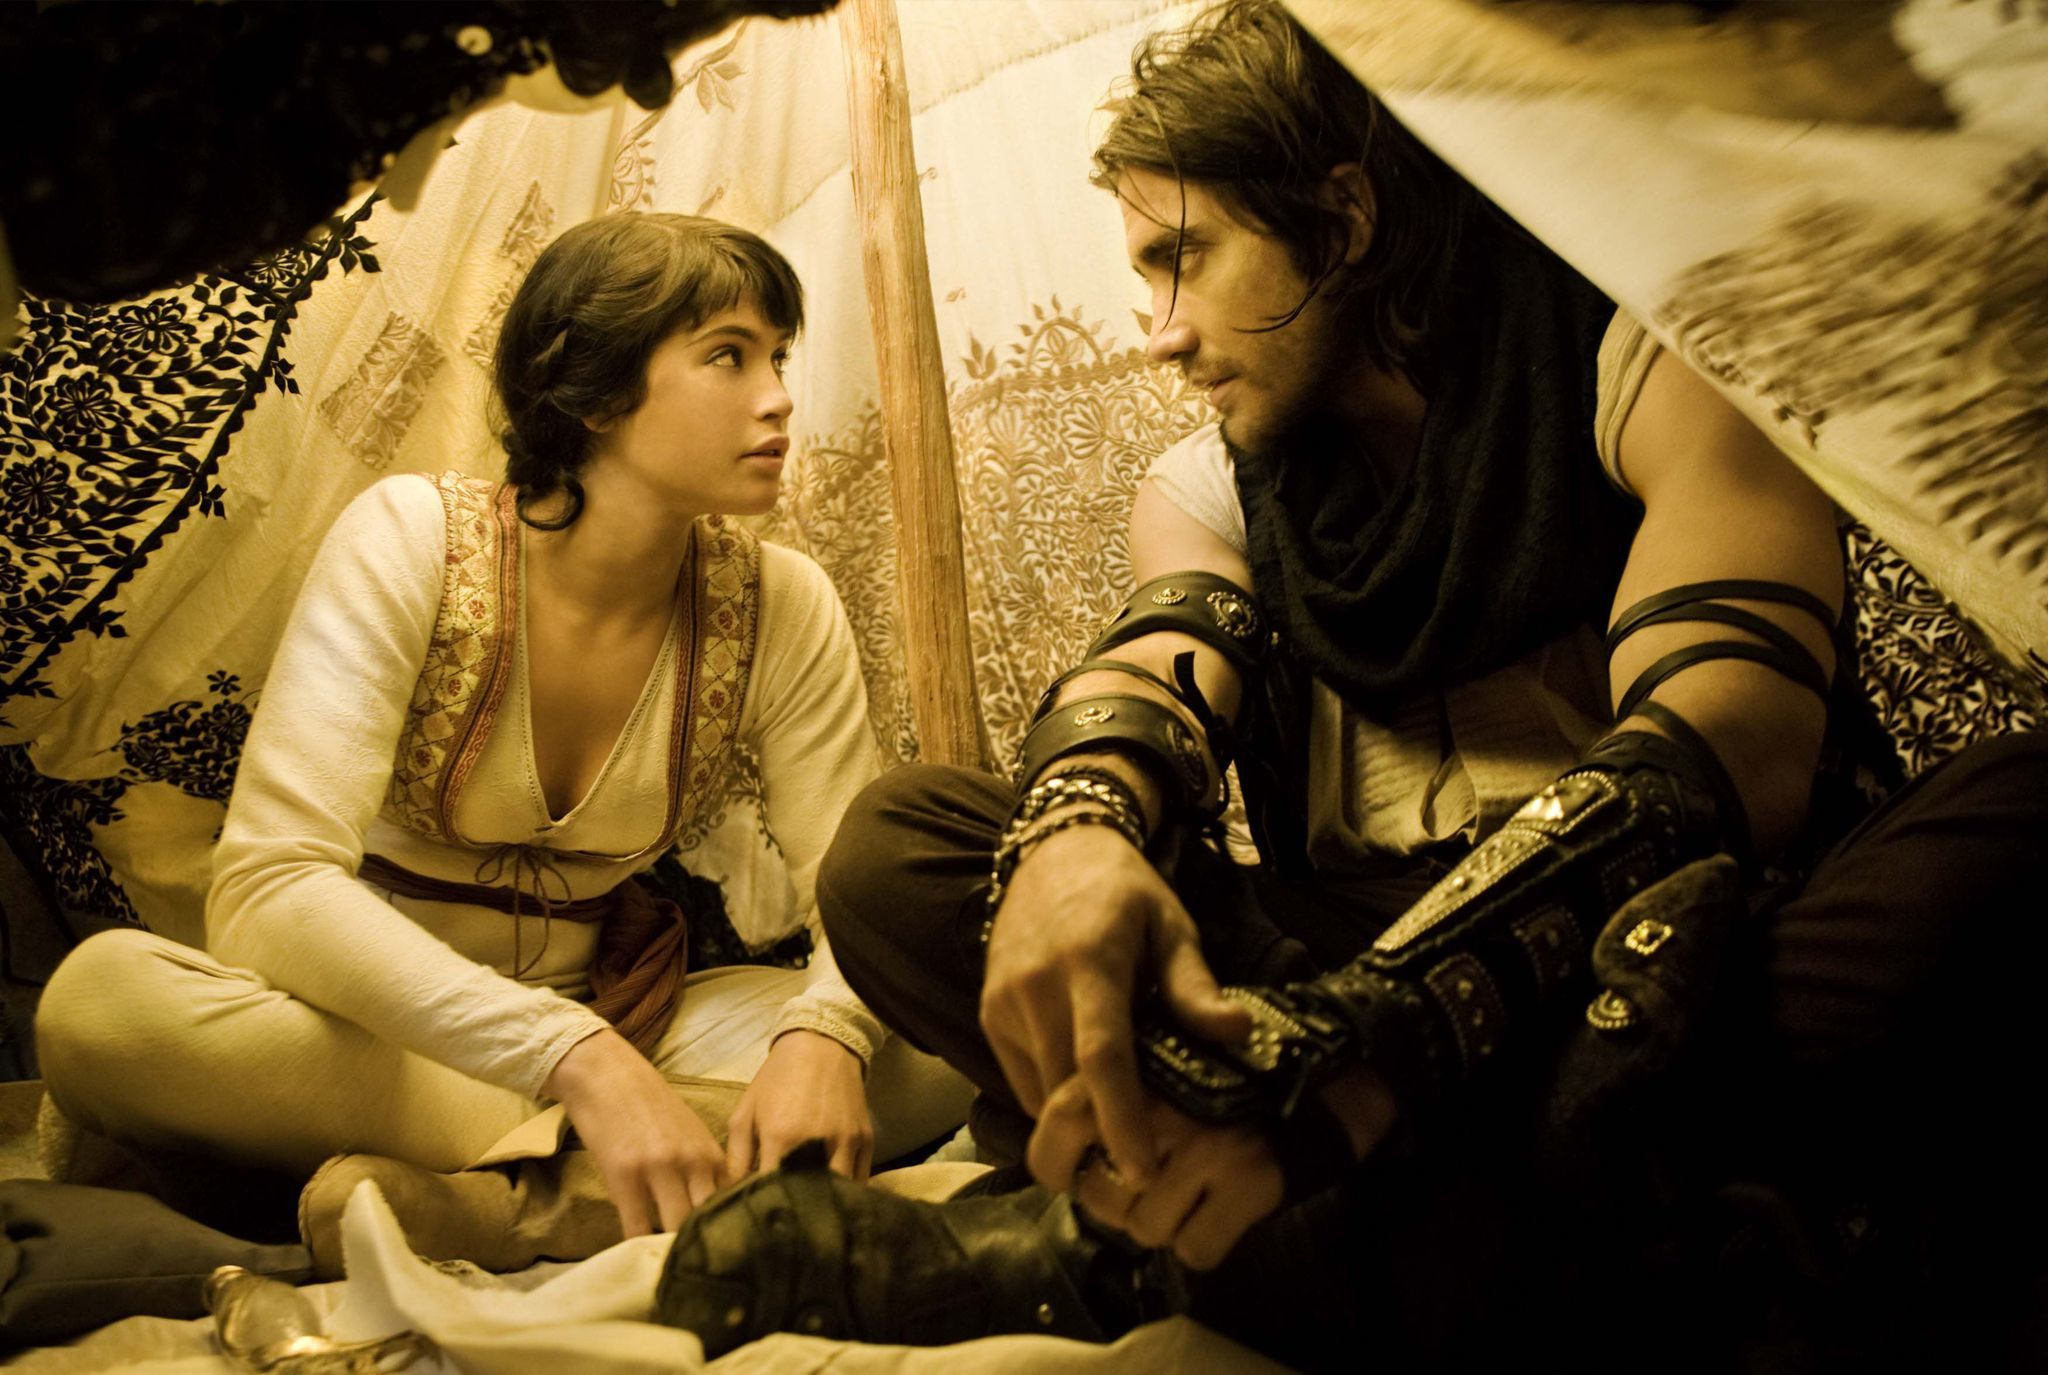 Watch Prince Of Persia The Sands Of Time On Netflix Today